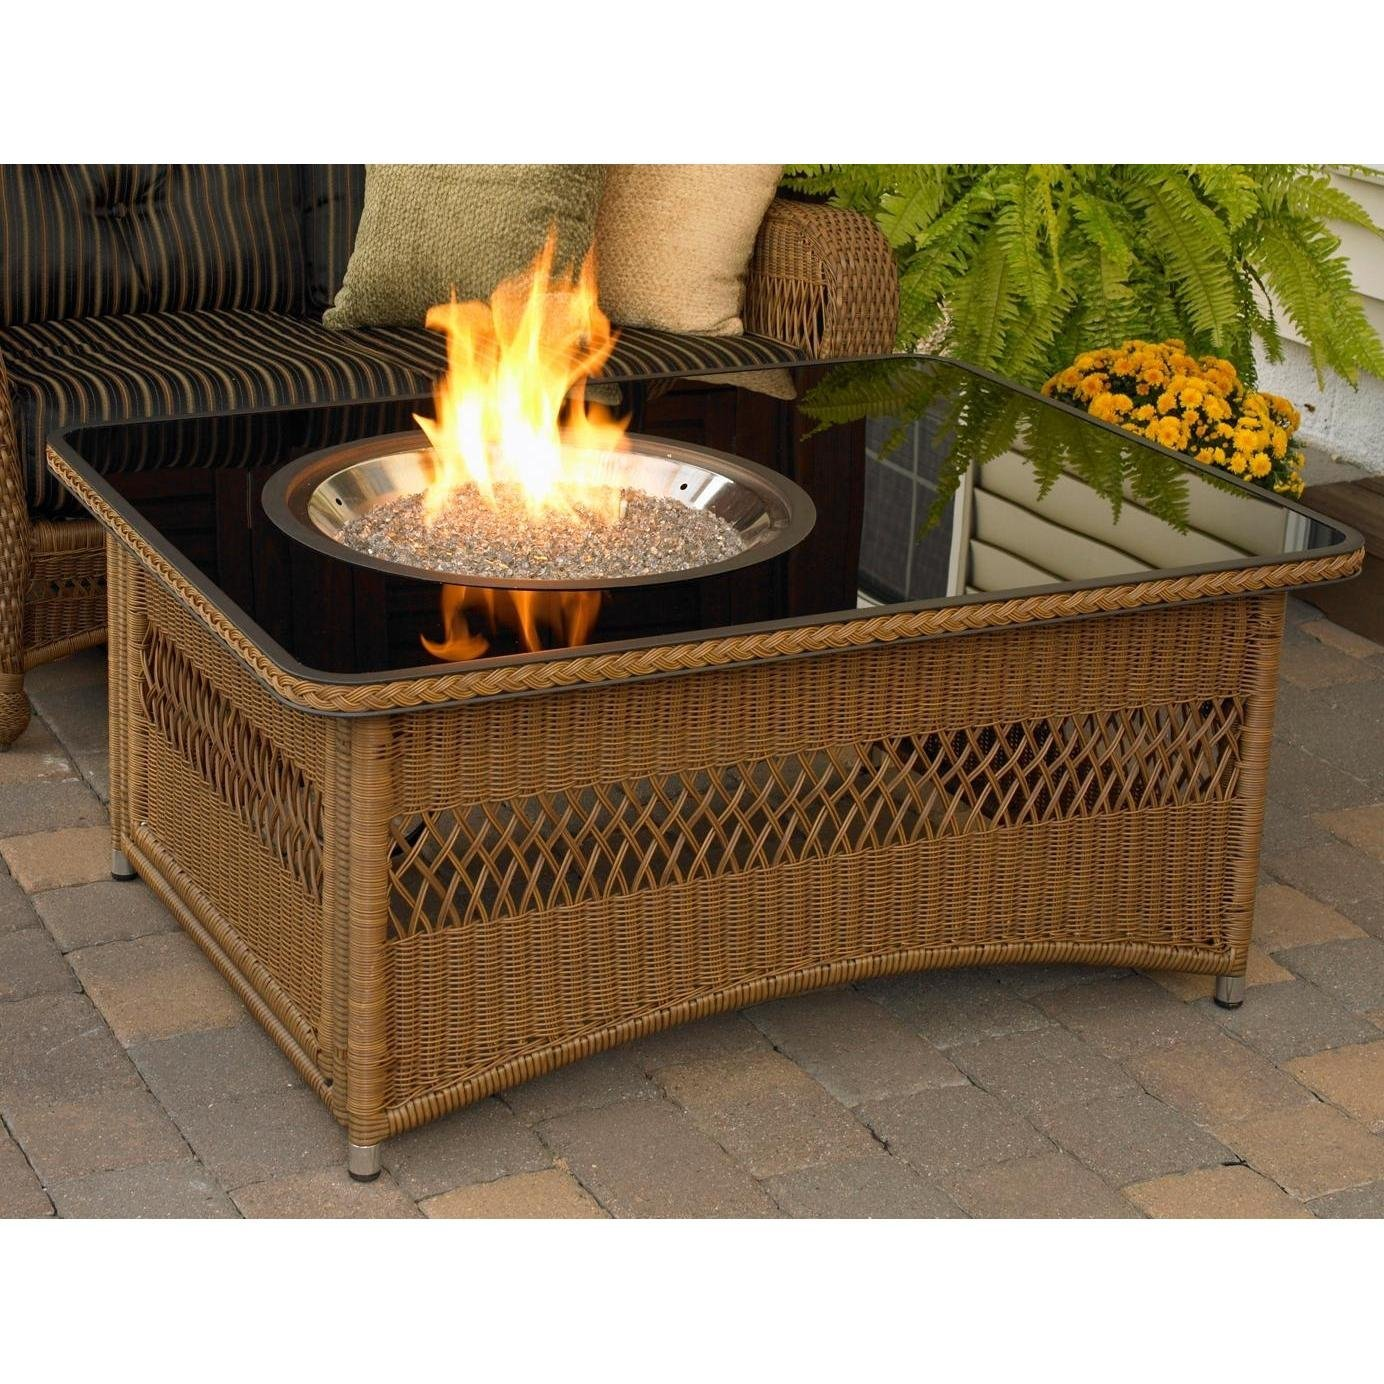 Patio Heaters And Fire Pit Blog Outdoor GreatRoom Company Resin Wicker Fire